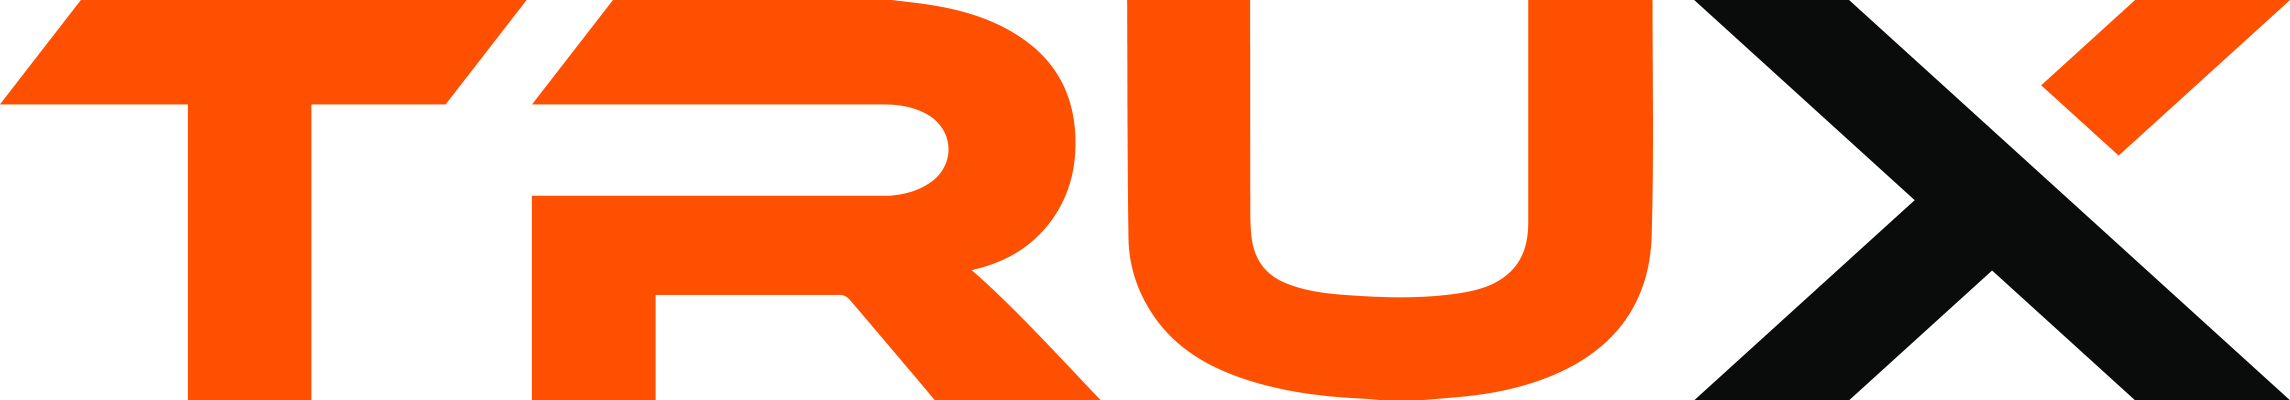 TRUX Logo Orange and Black